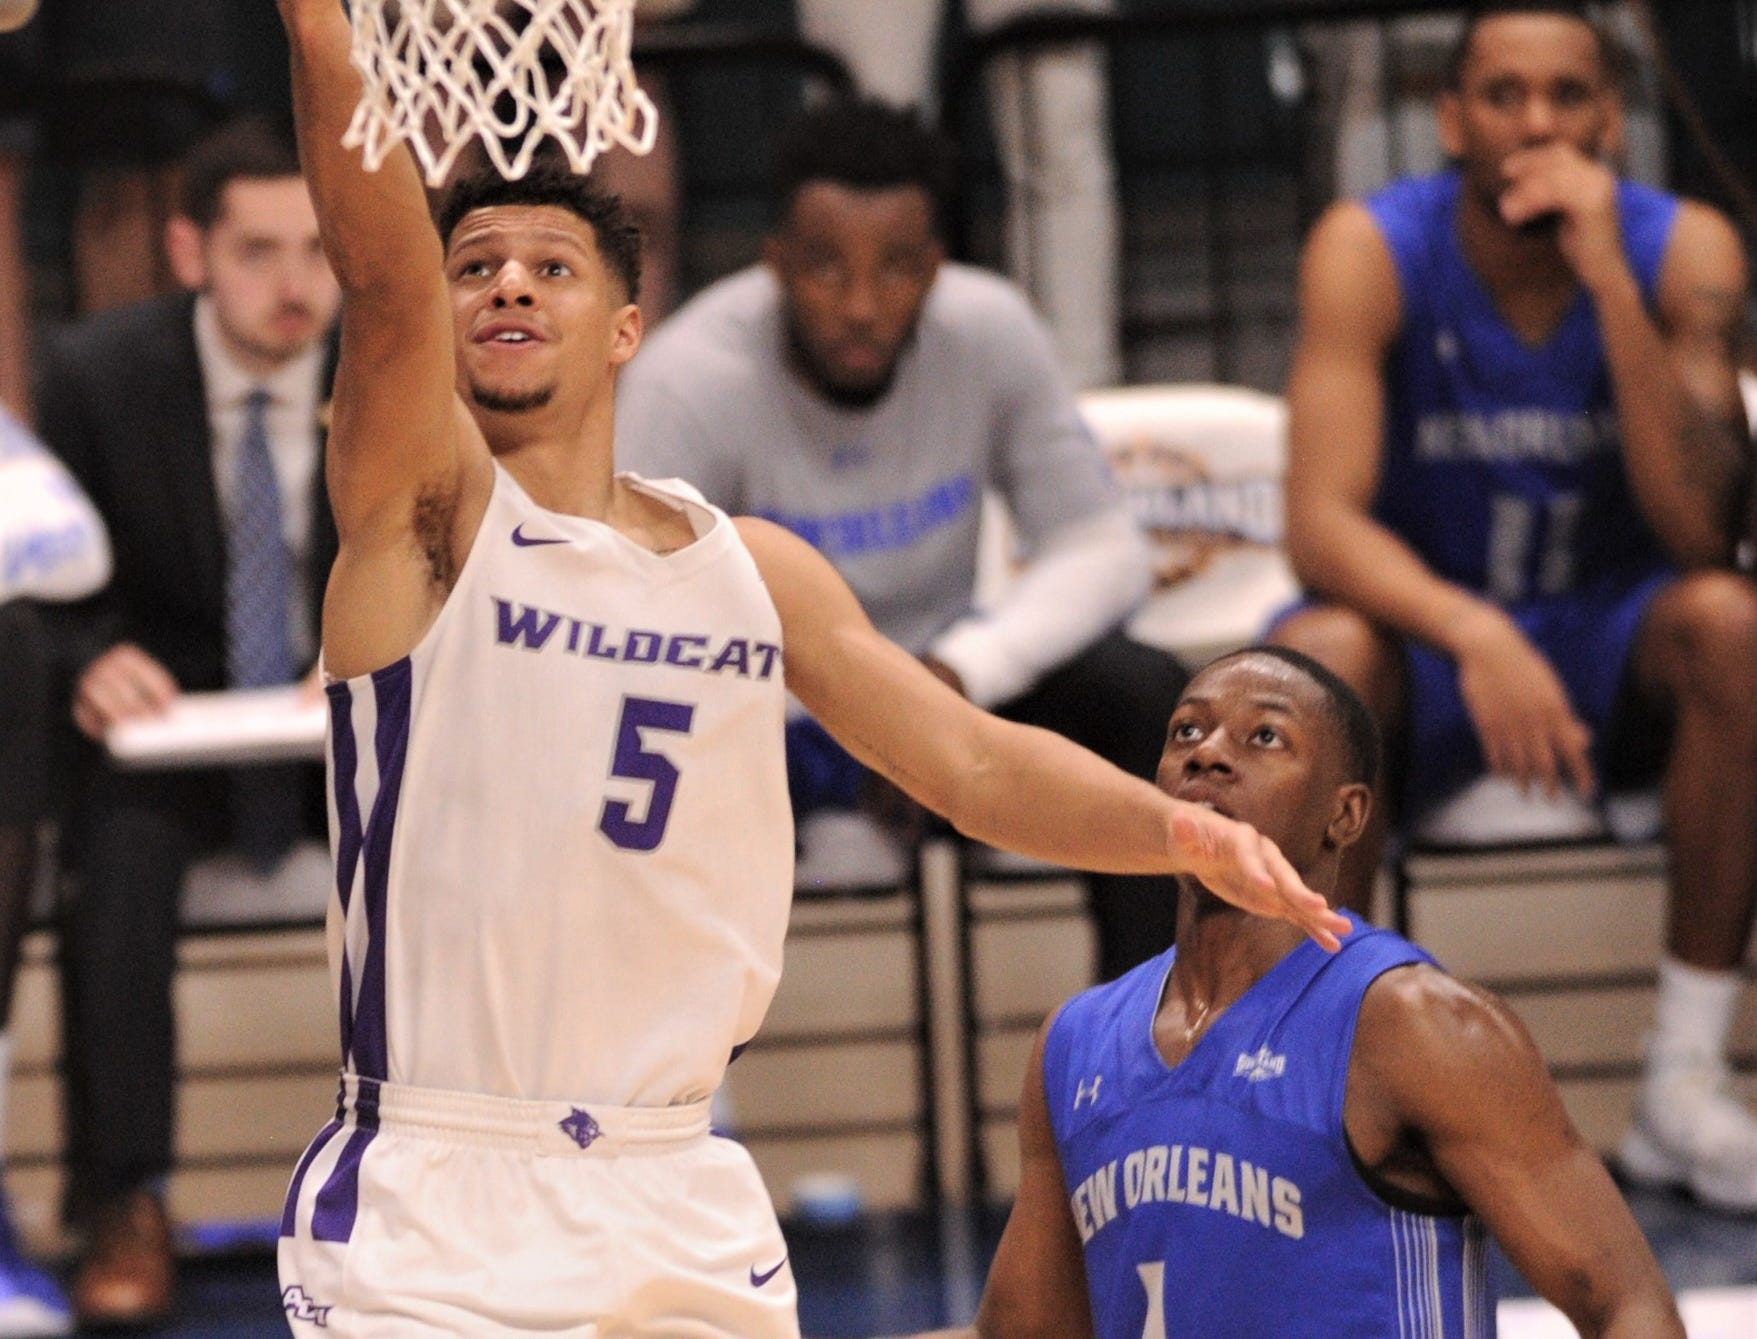 ACU's Payten Ricks, left, drives to the basket as New Orleans' Damion Rosser looks on. ACU beat the Privateers 77-60 to win the Southland Conference Tournament title Saturday, March 16, 2019, at the Merrell Center in Katy.